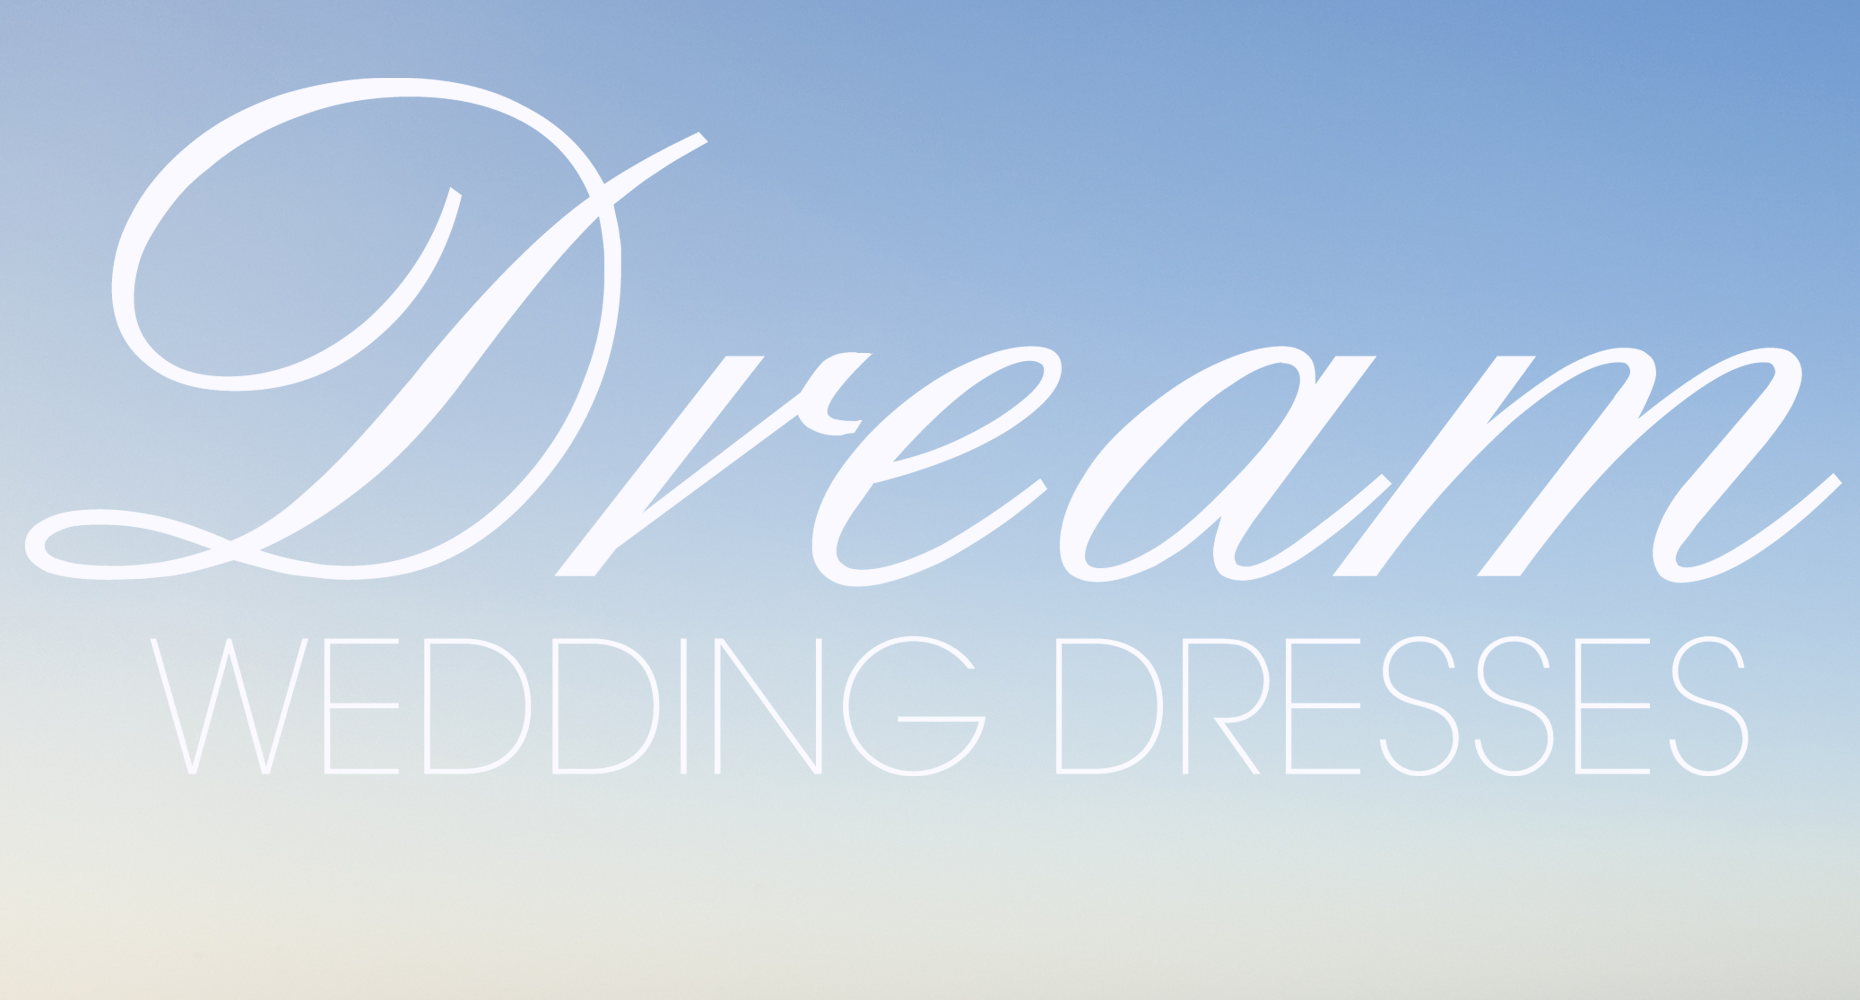 Dream Wedding Dresses Website Design By Rick Carlile at Creadyne